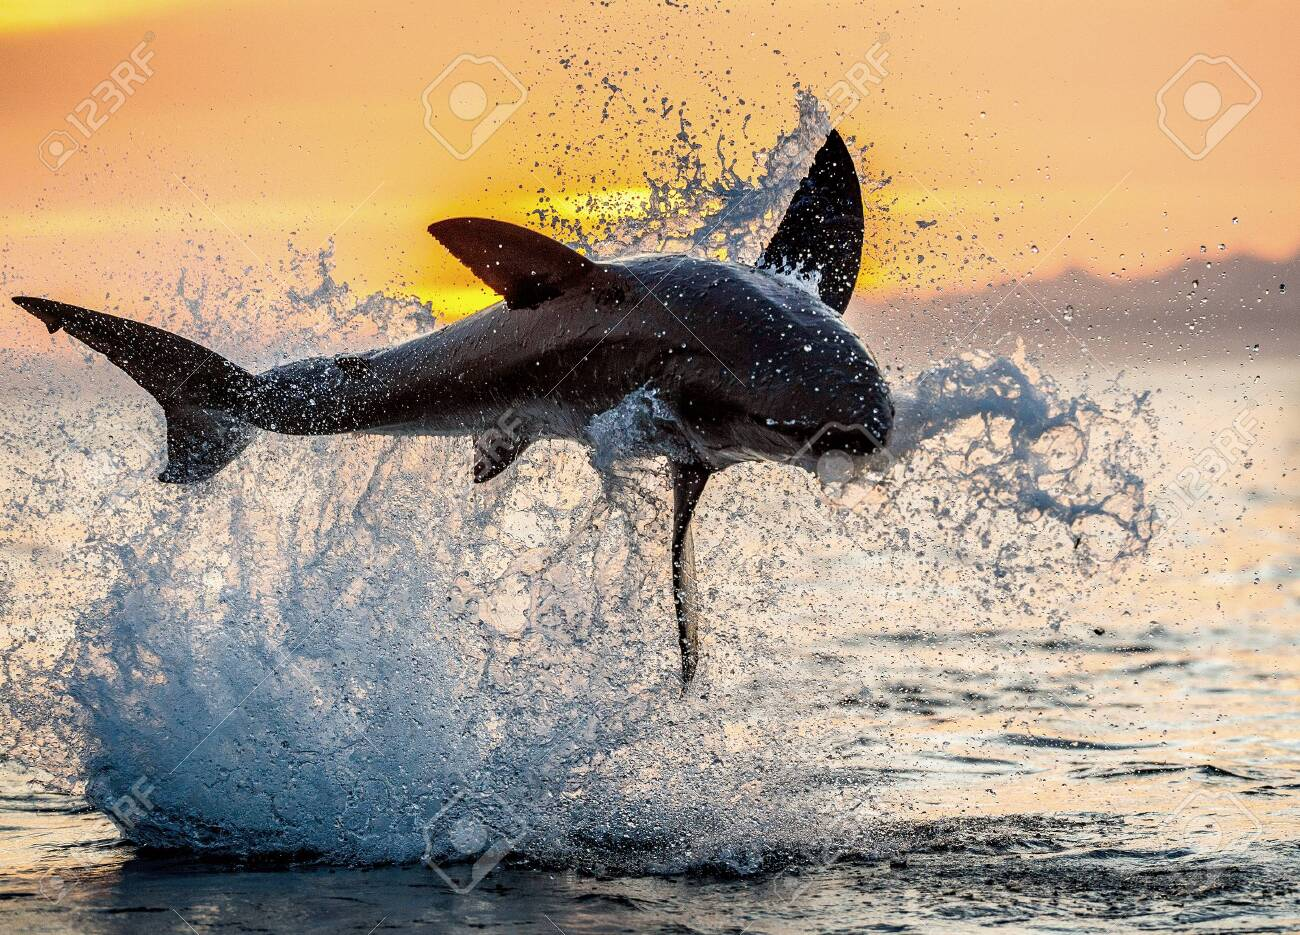 jumping Great White Shark. Red sky of sunrise. Great White Shark breaching in attack. Scientific name: Carcharodon carcharias. South Africa. - 130651183